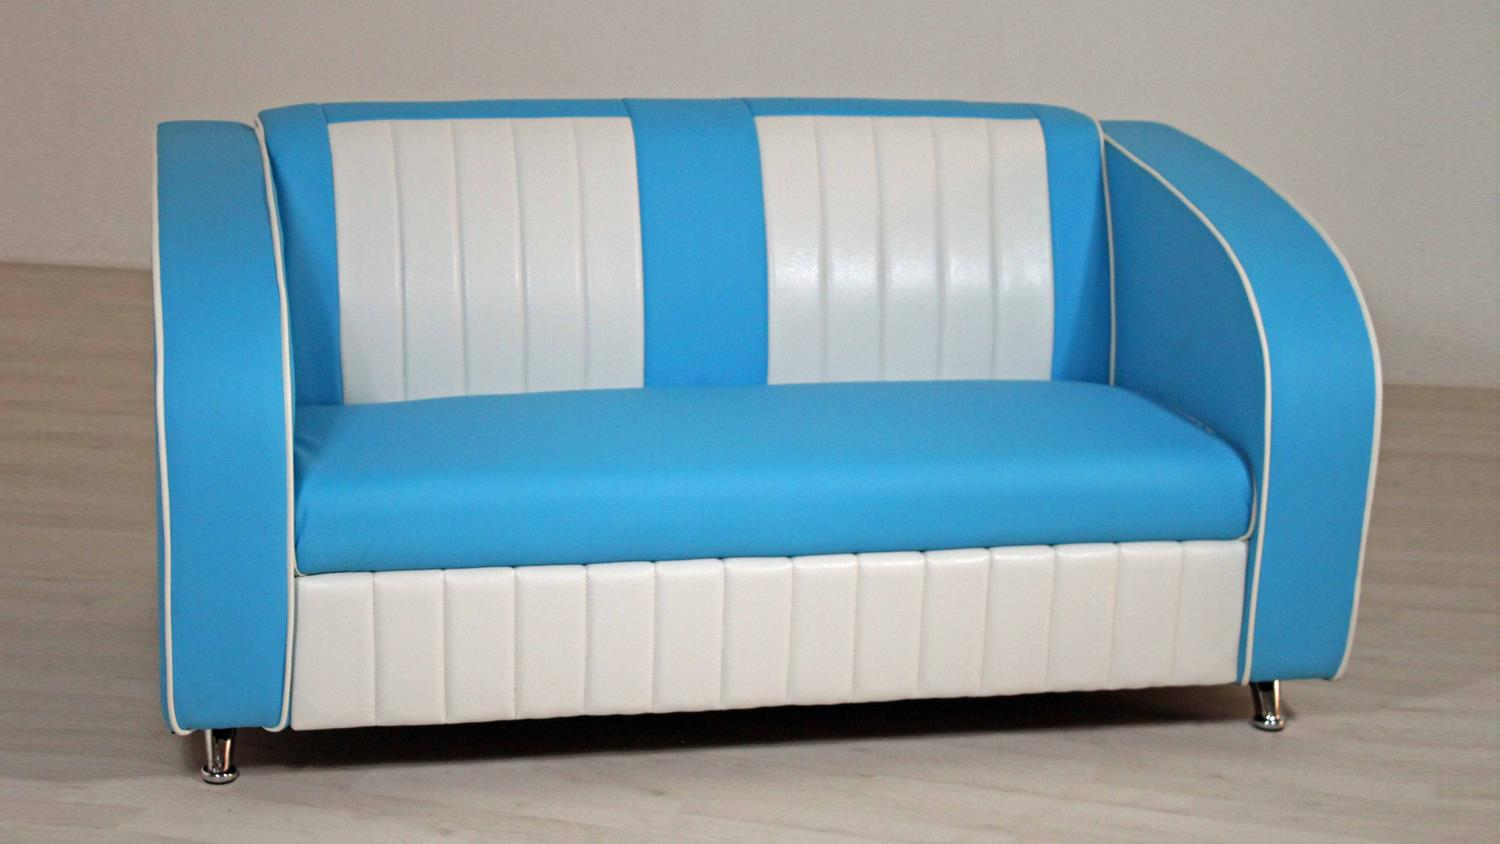 50er jahre sofa perfect er sofa loungesofa couch retro er for Couch 50er jahre stil